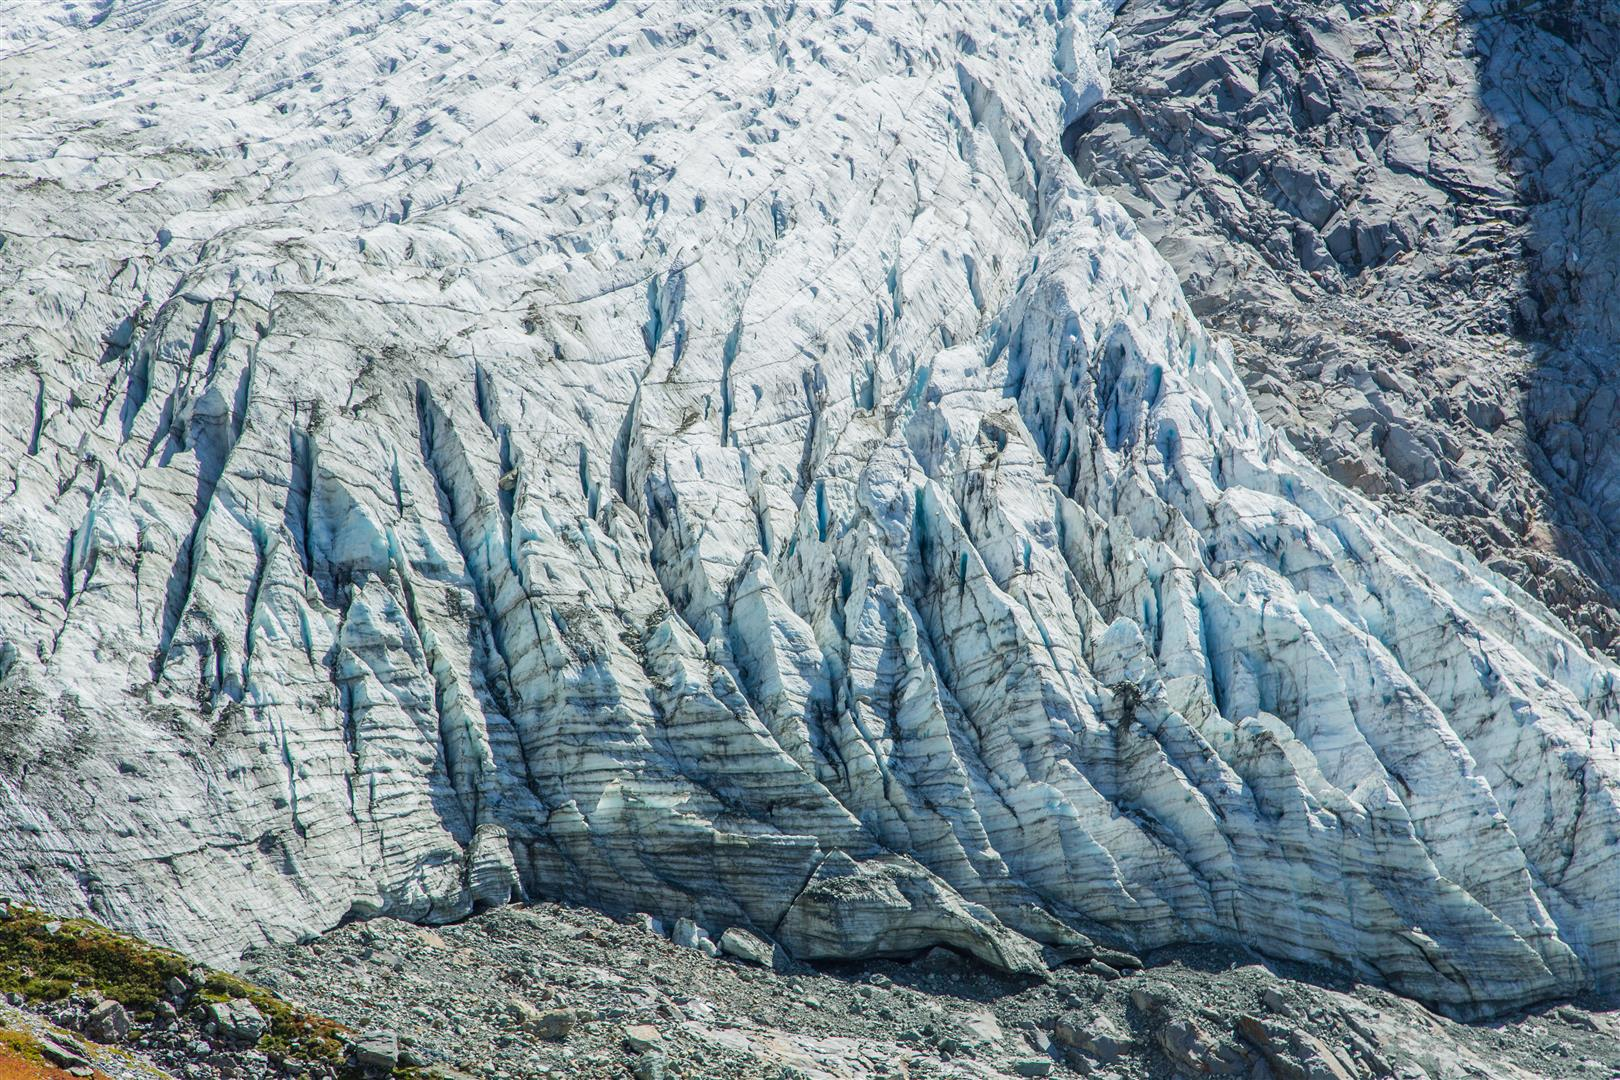 Lower Curtis Glacier detail